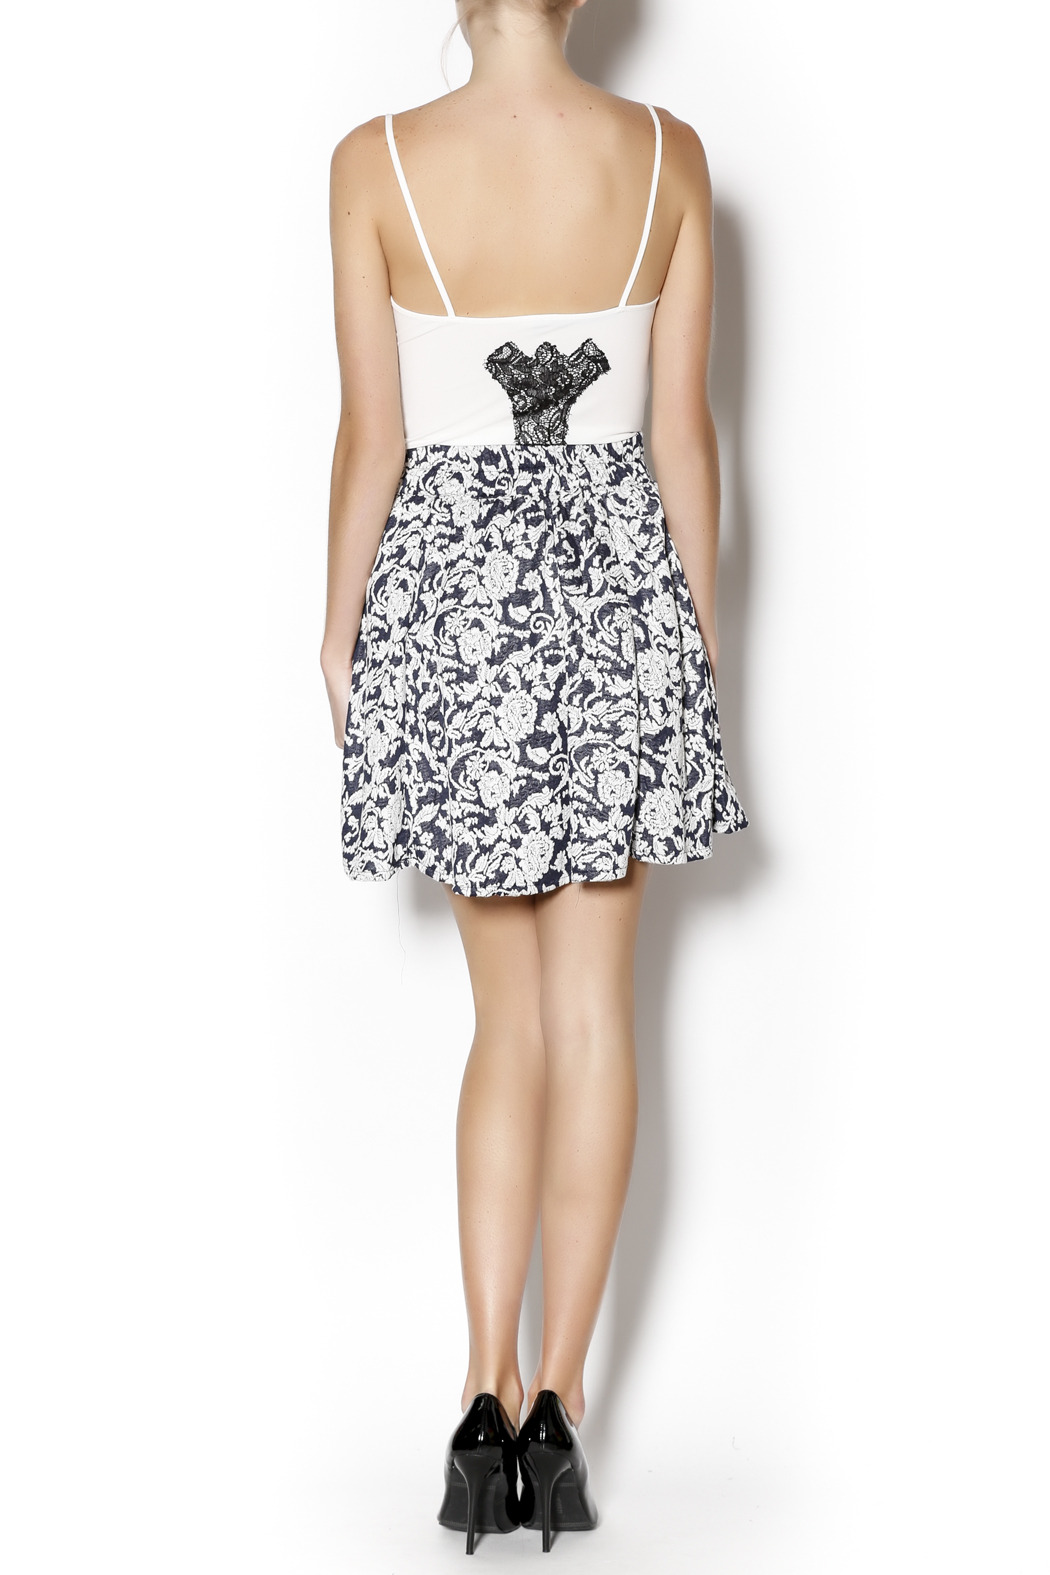 Angie Floral Swing Skirt - Side Cropped Image